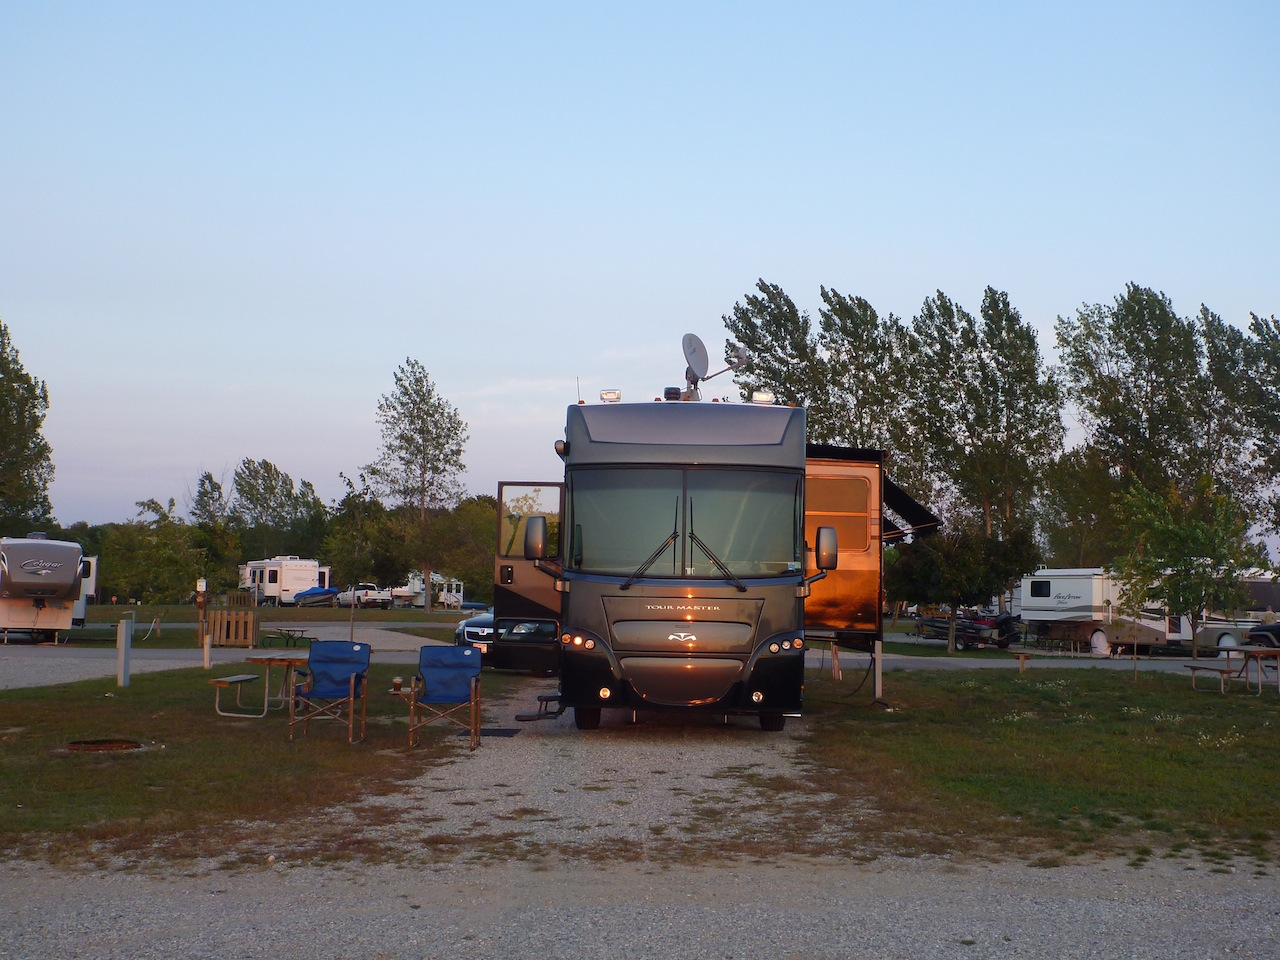 Our Site In The Holiday Park Campground In Traverse City, MI